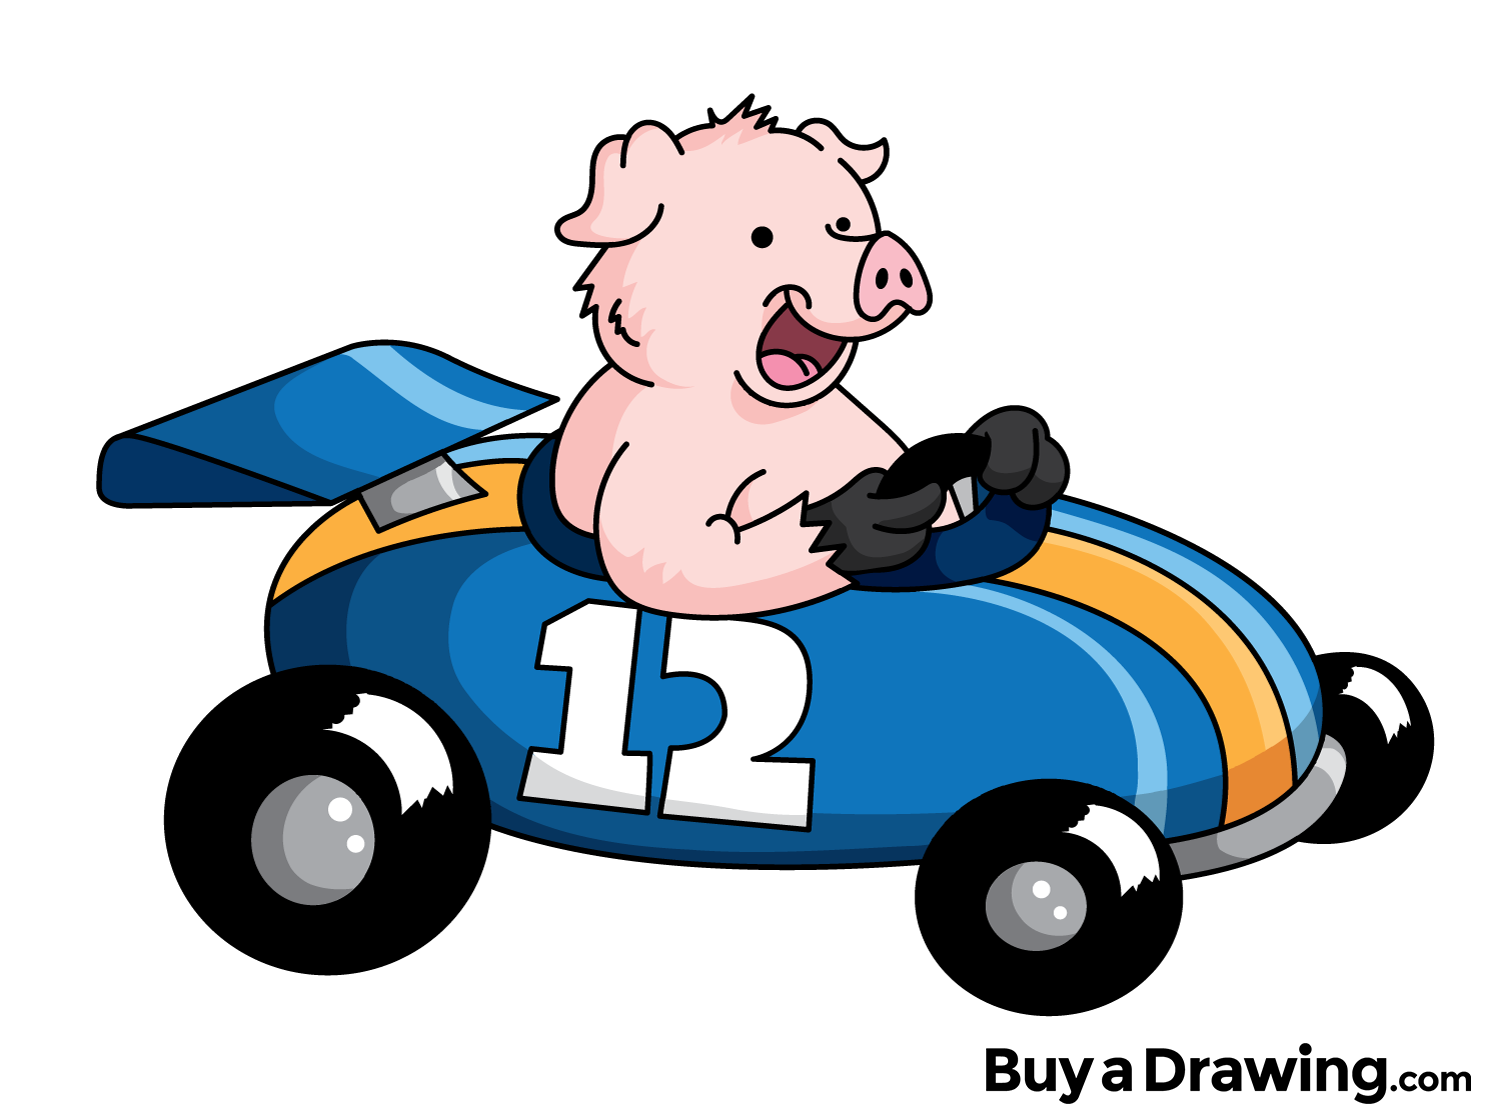 Race clipart amazing race. Racing car drawing at